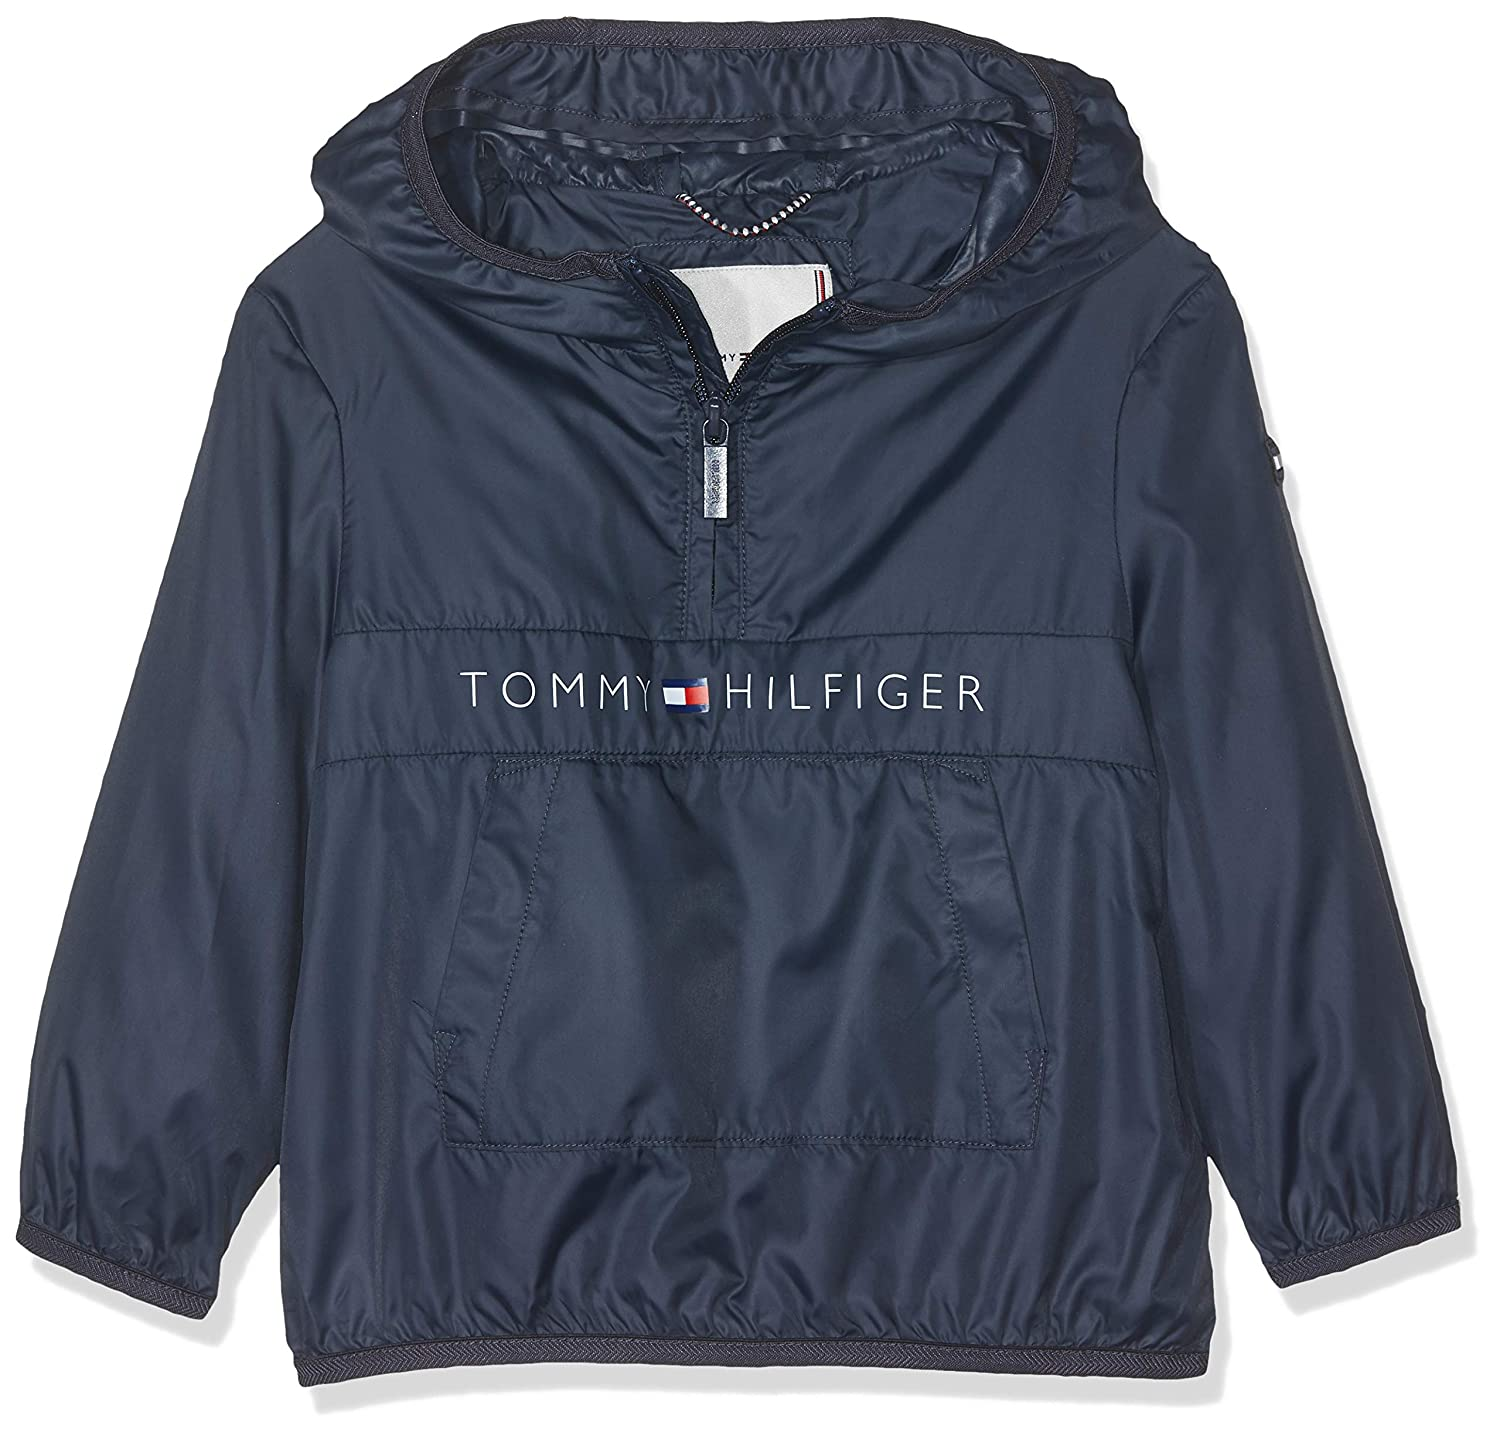 Tommy Hilfiger Baby Jacke Unisex Pop-Over Jacket